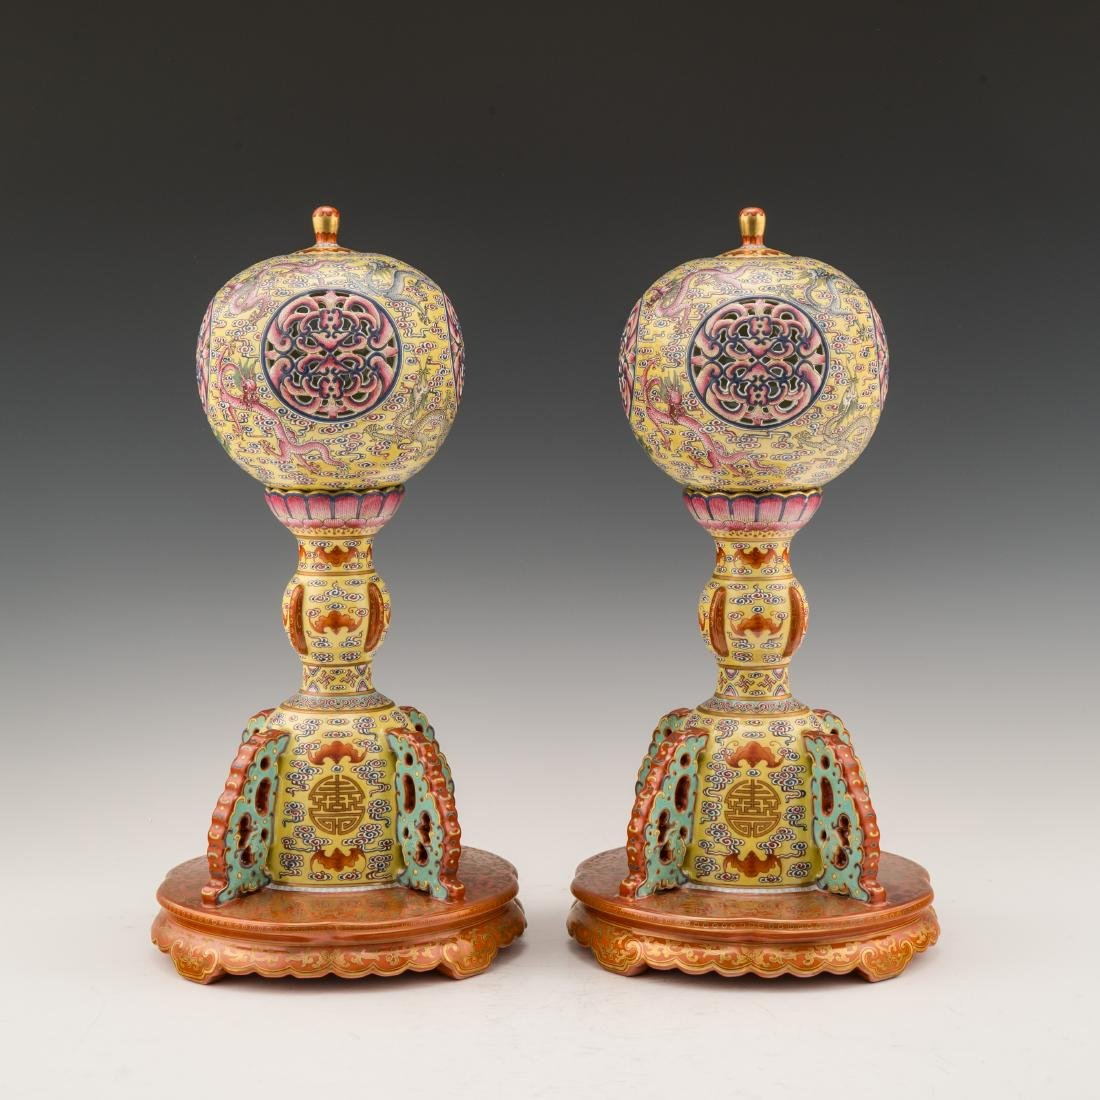 PAIR OF SGRAFITTO PORCELAIN LAMPS